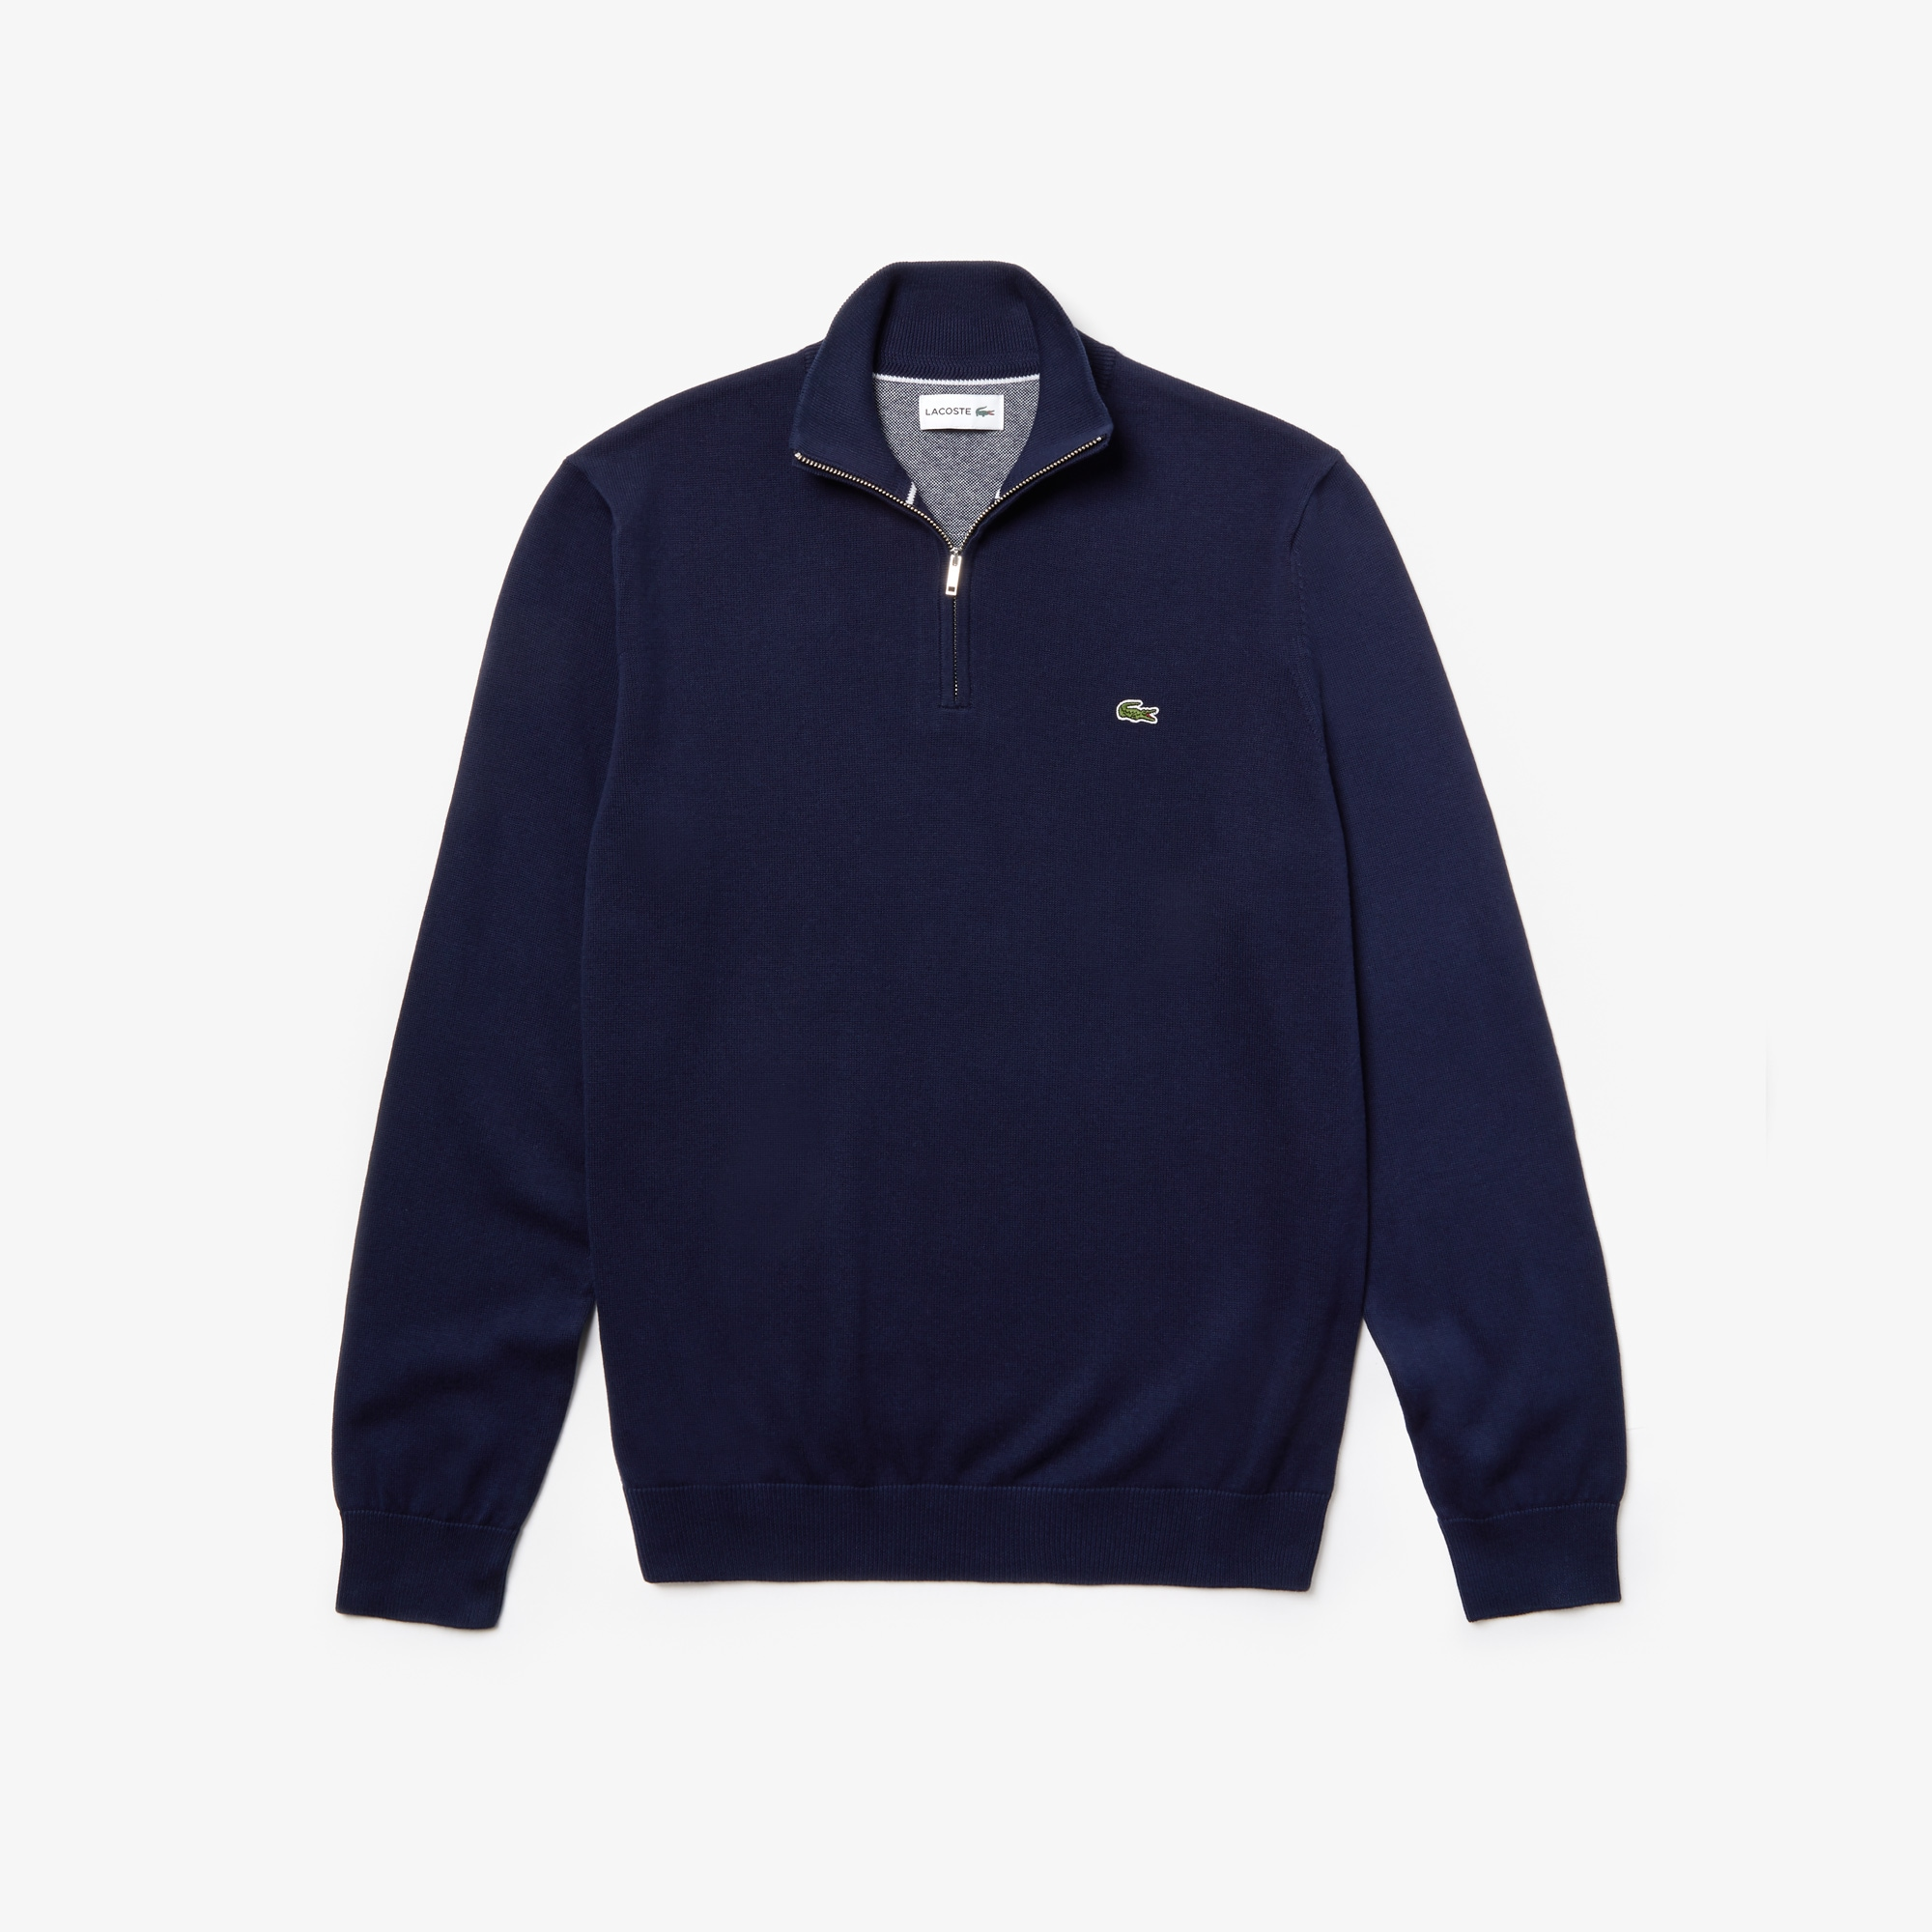 9221cdfd11ddf Pull Homme   Vêtements Homme   LACOSTE